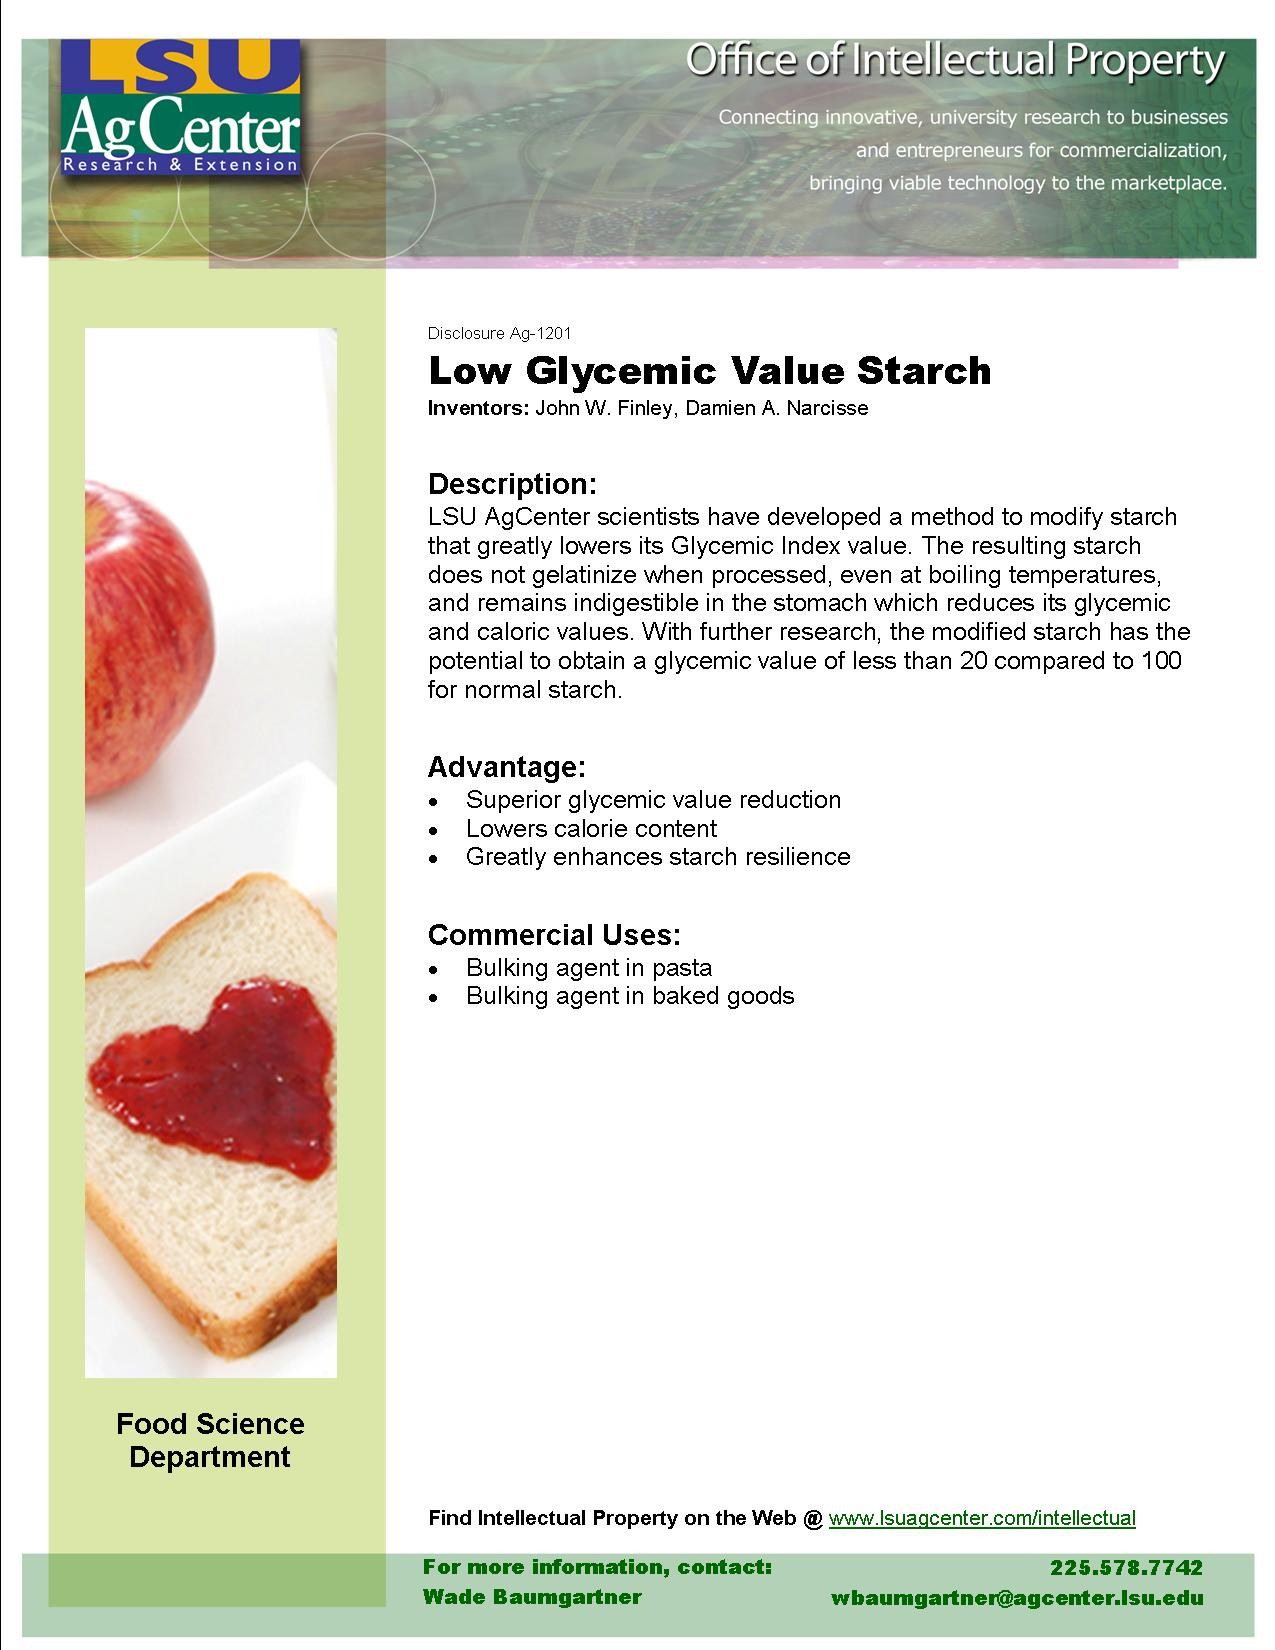 Low Glycemic-value Starch